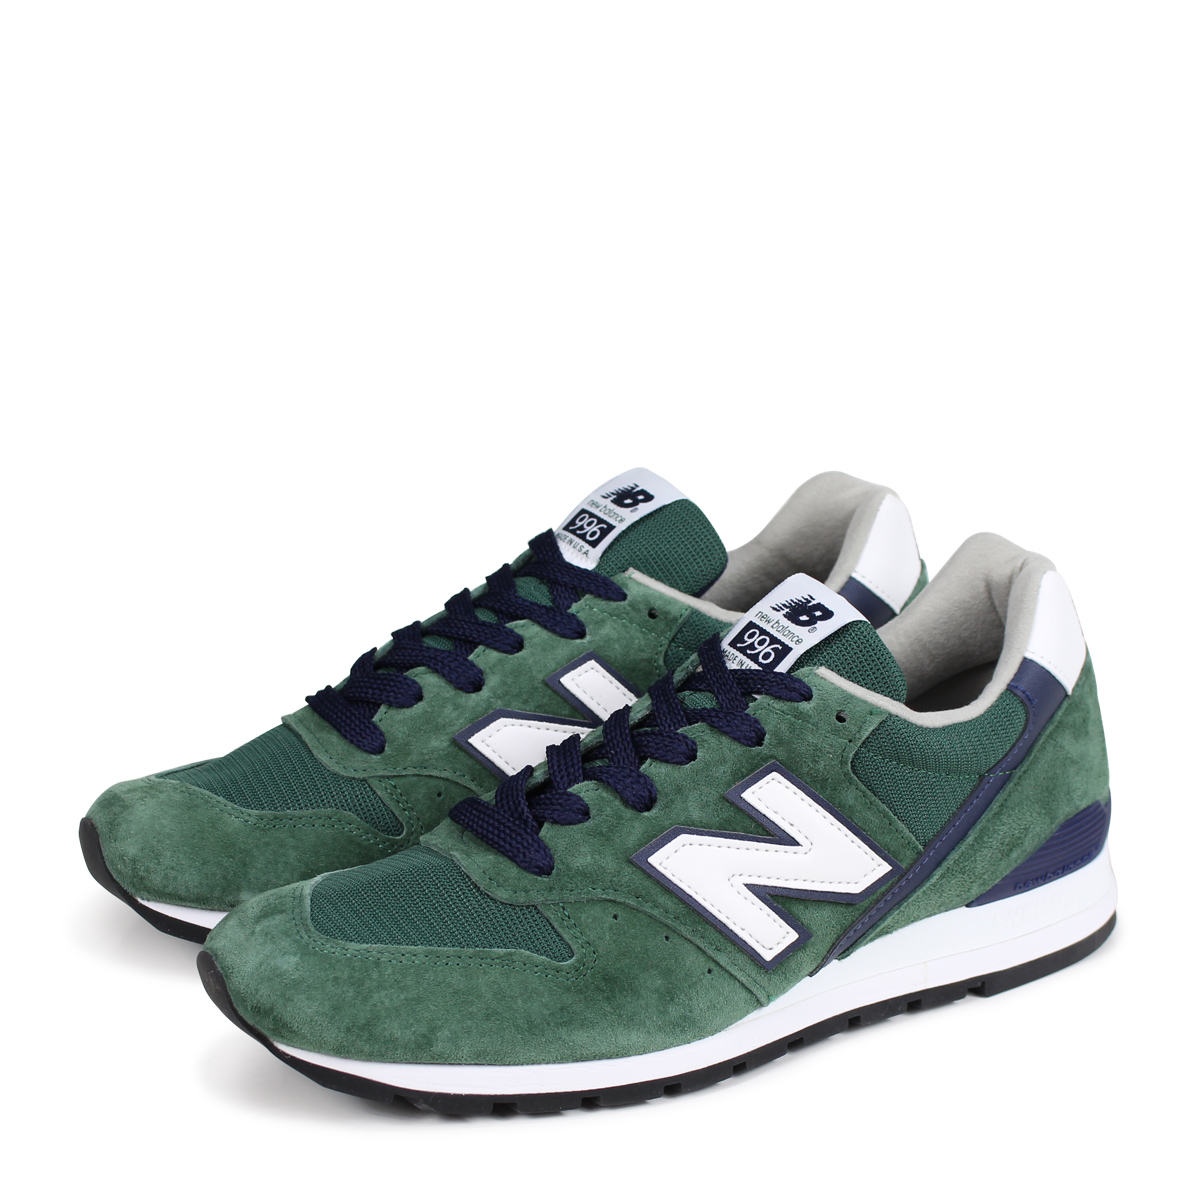 buy popular 17168 df2d1 new balance 996 New Balance sneakers USA M996CSL D Wise men gap Dis shoes  green ...